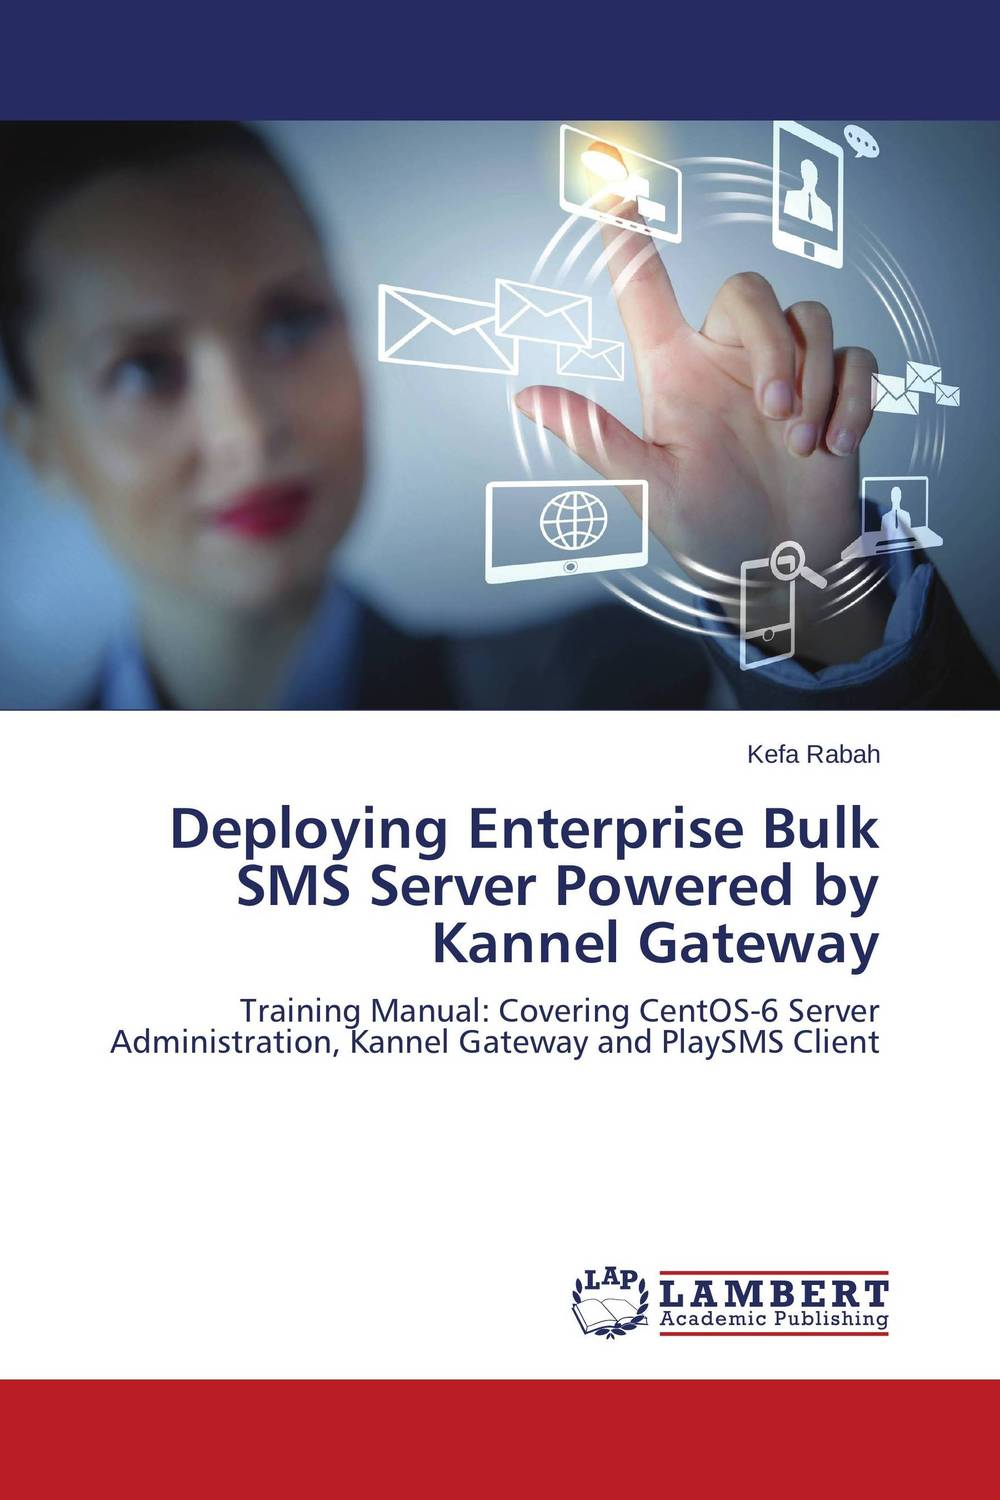 Deploying Enterprise Bulk SMS Server Powered by Kannel Gateway гонсалвес э изучаем java ee 7